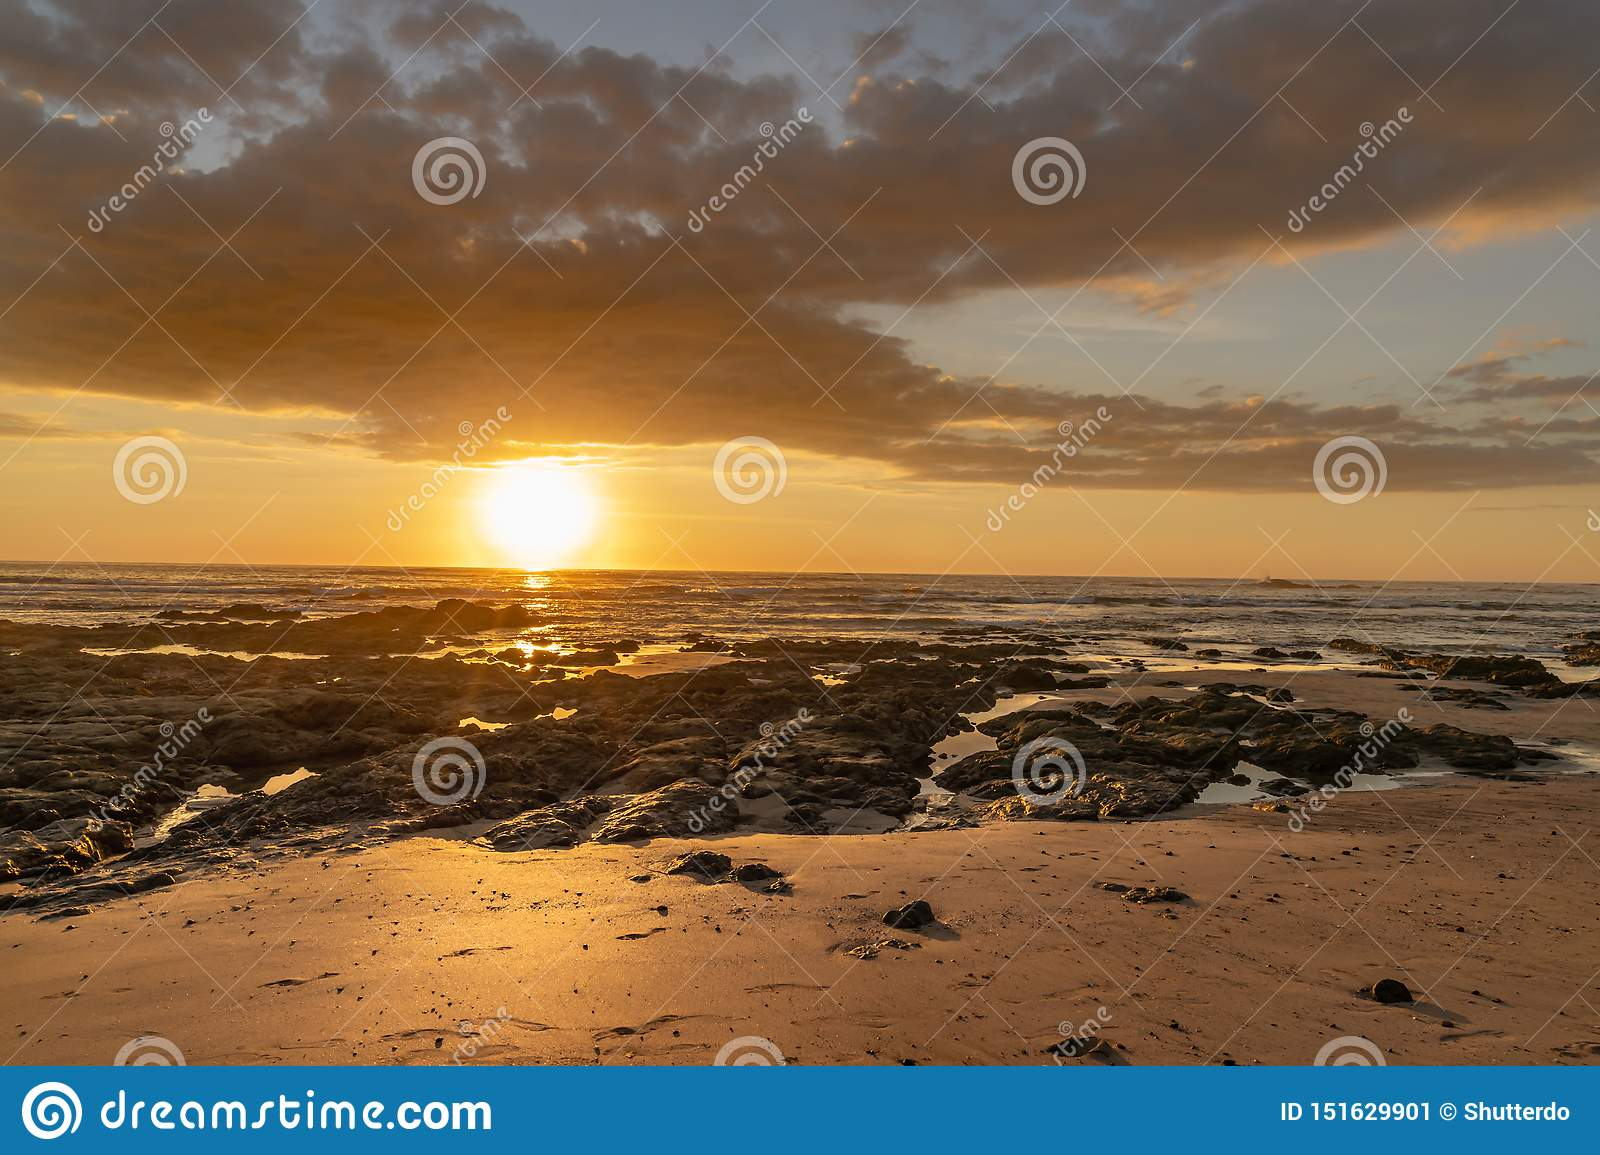 Golden sky and sunset over the ocean